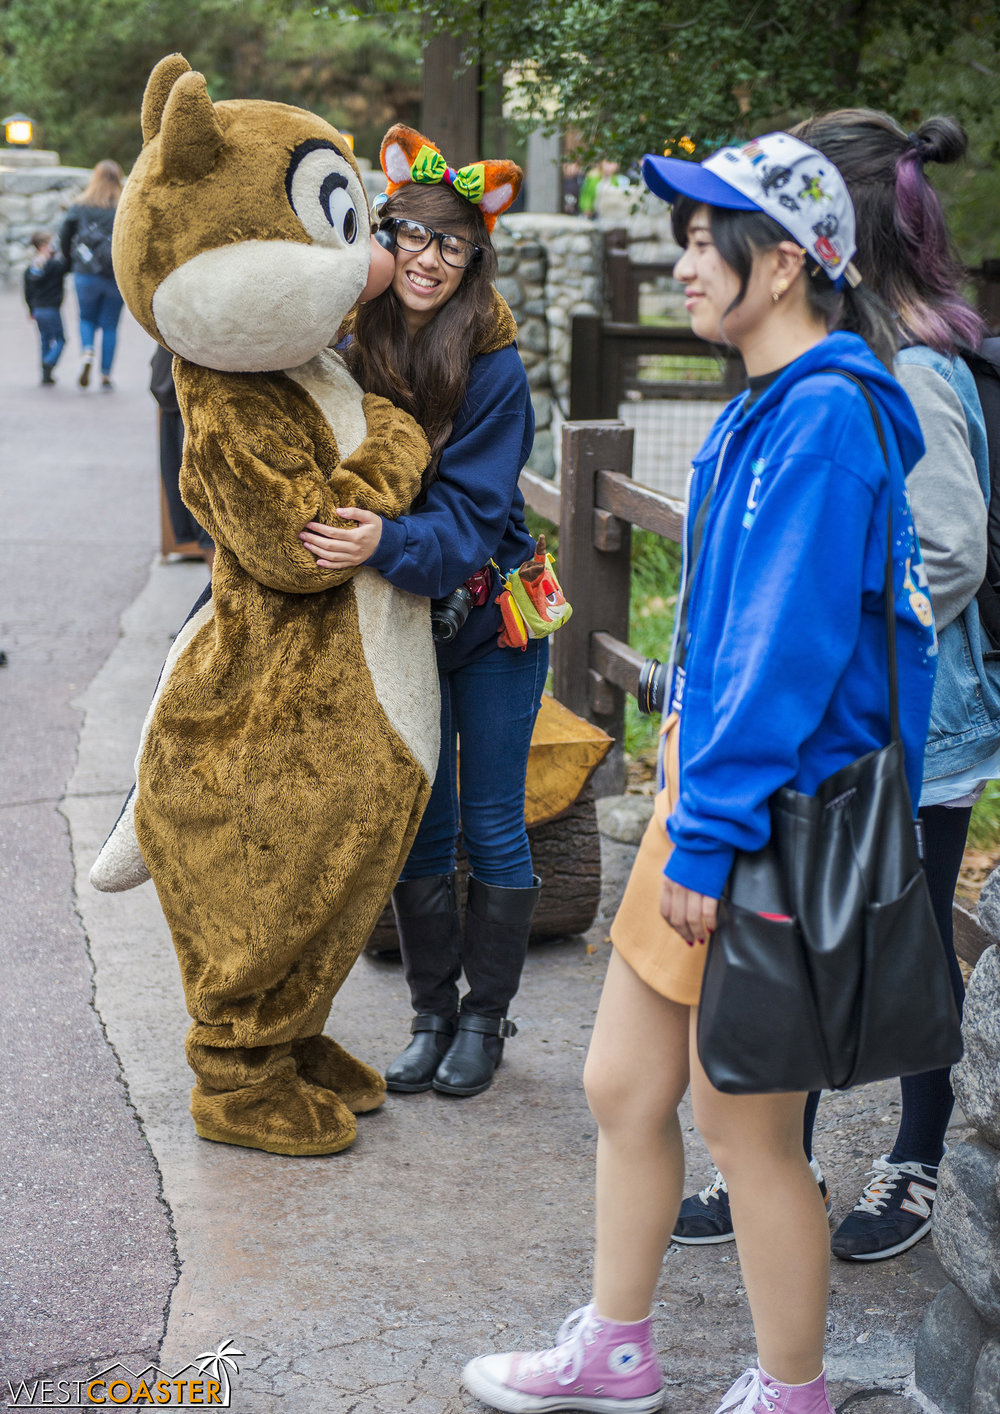 I caught Chip and Dale interacting with guests along Grizzly Peak as I walked through.